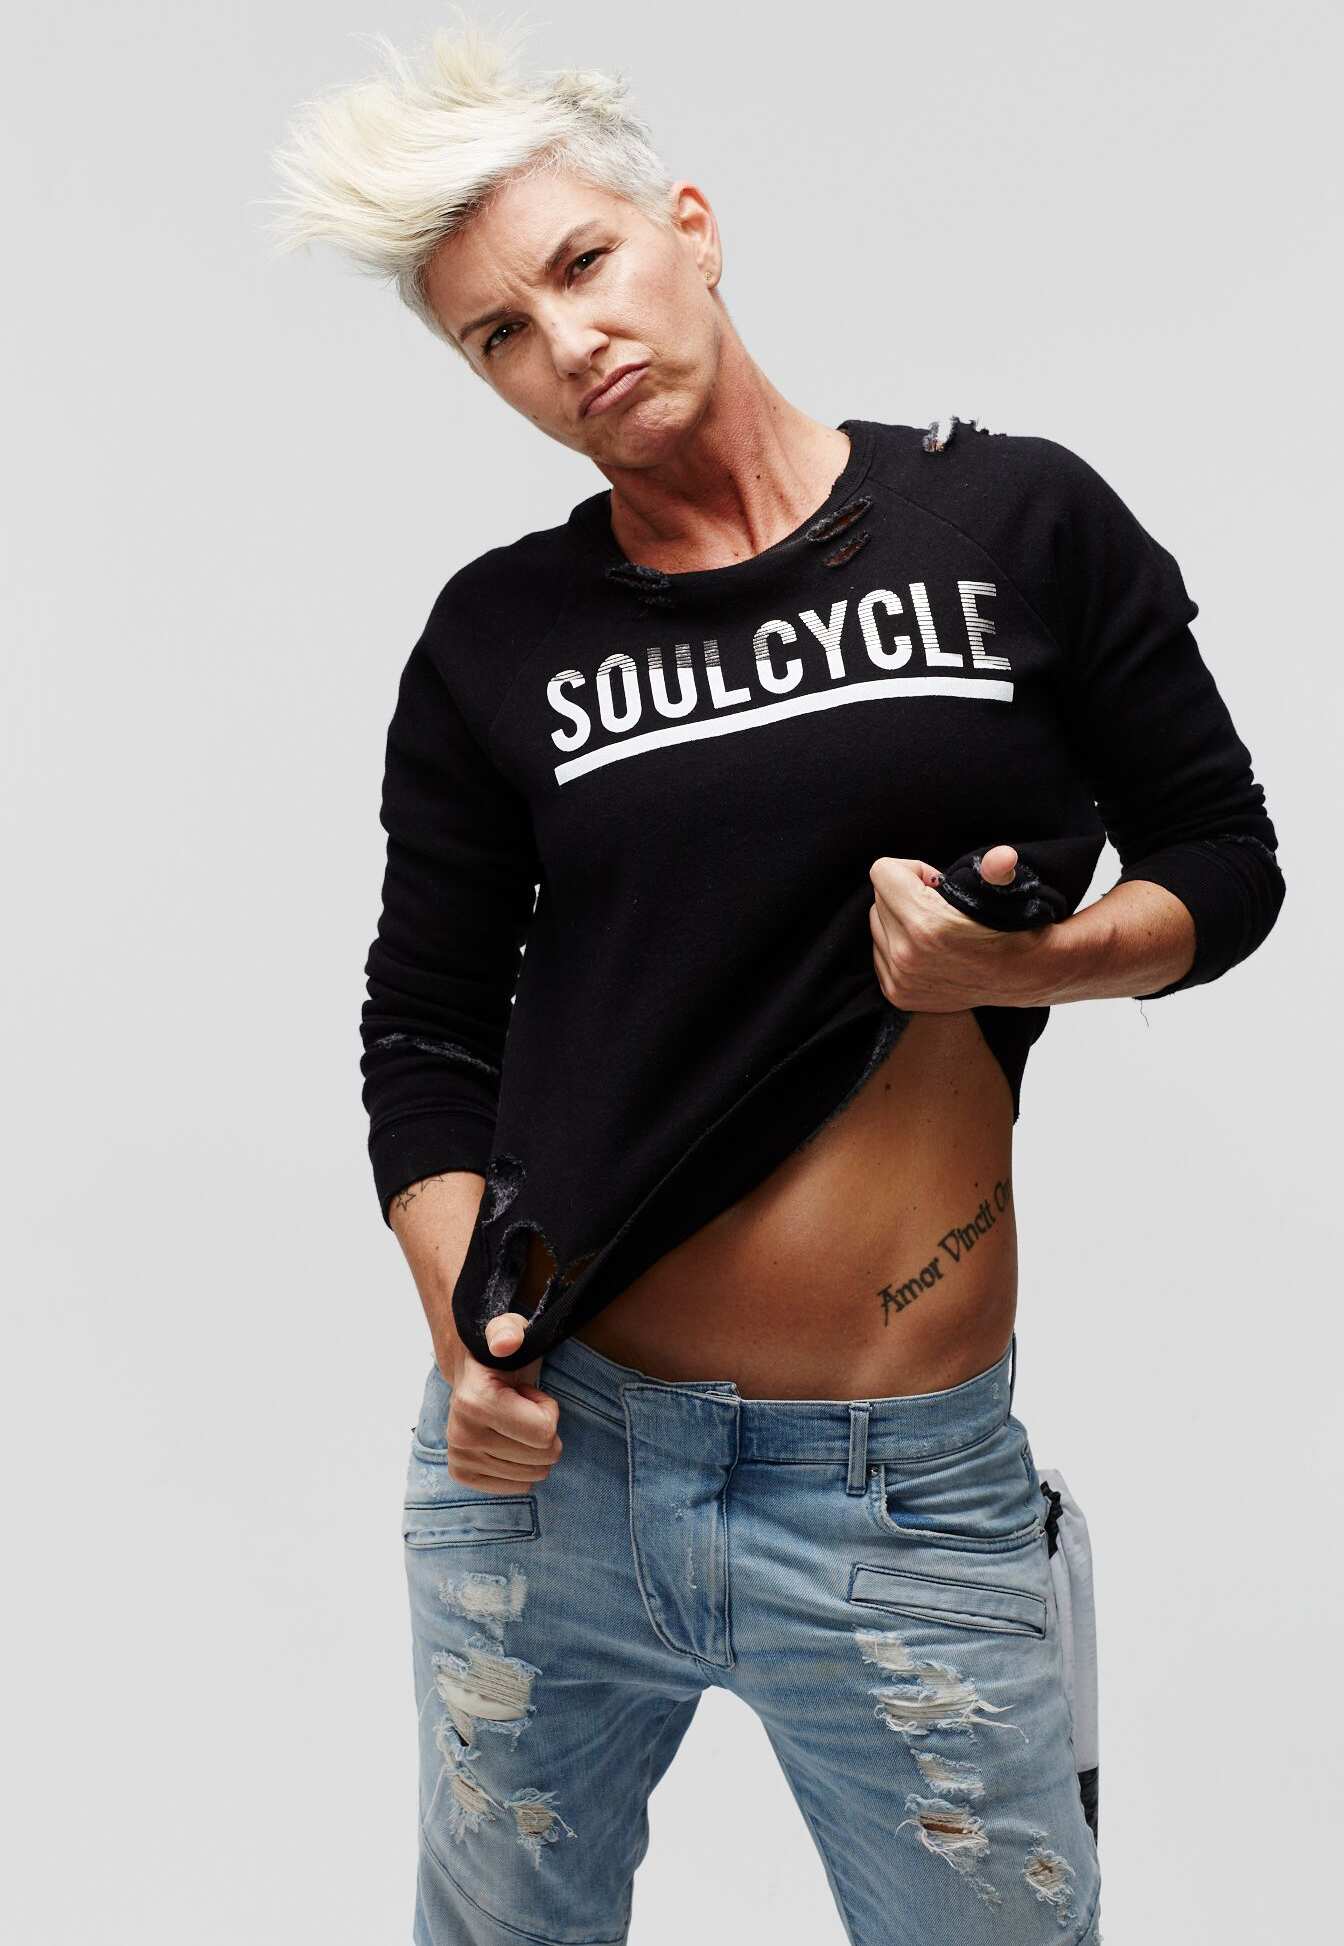 SoulCycle Master Instructor Stacey Griffith Shares How Fitness Helped Her After Hitting Rock Bottom